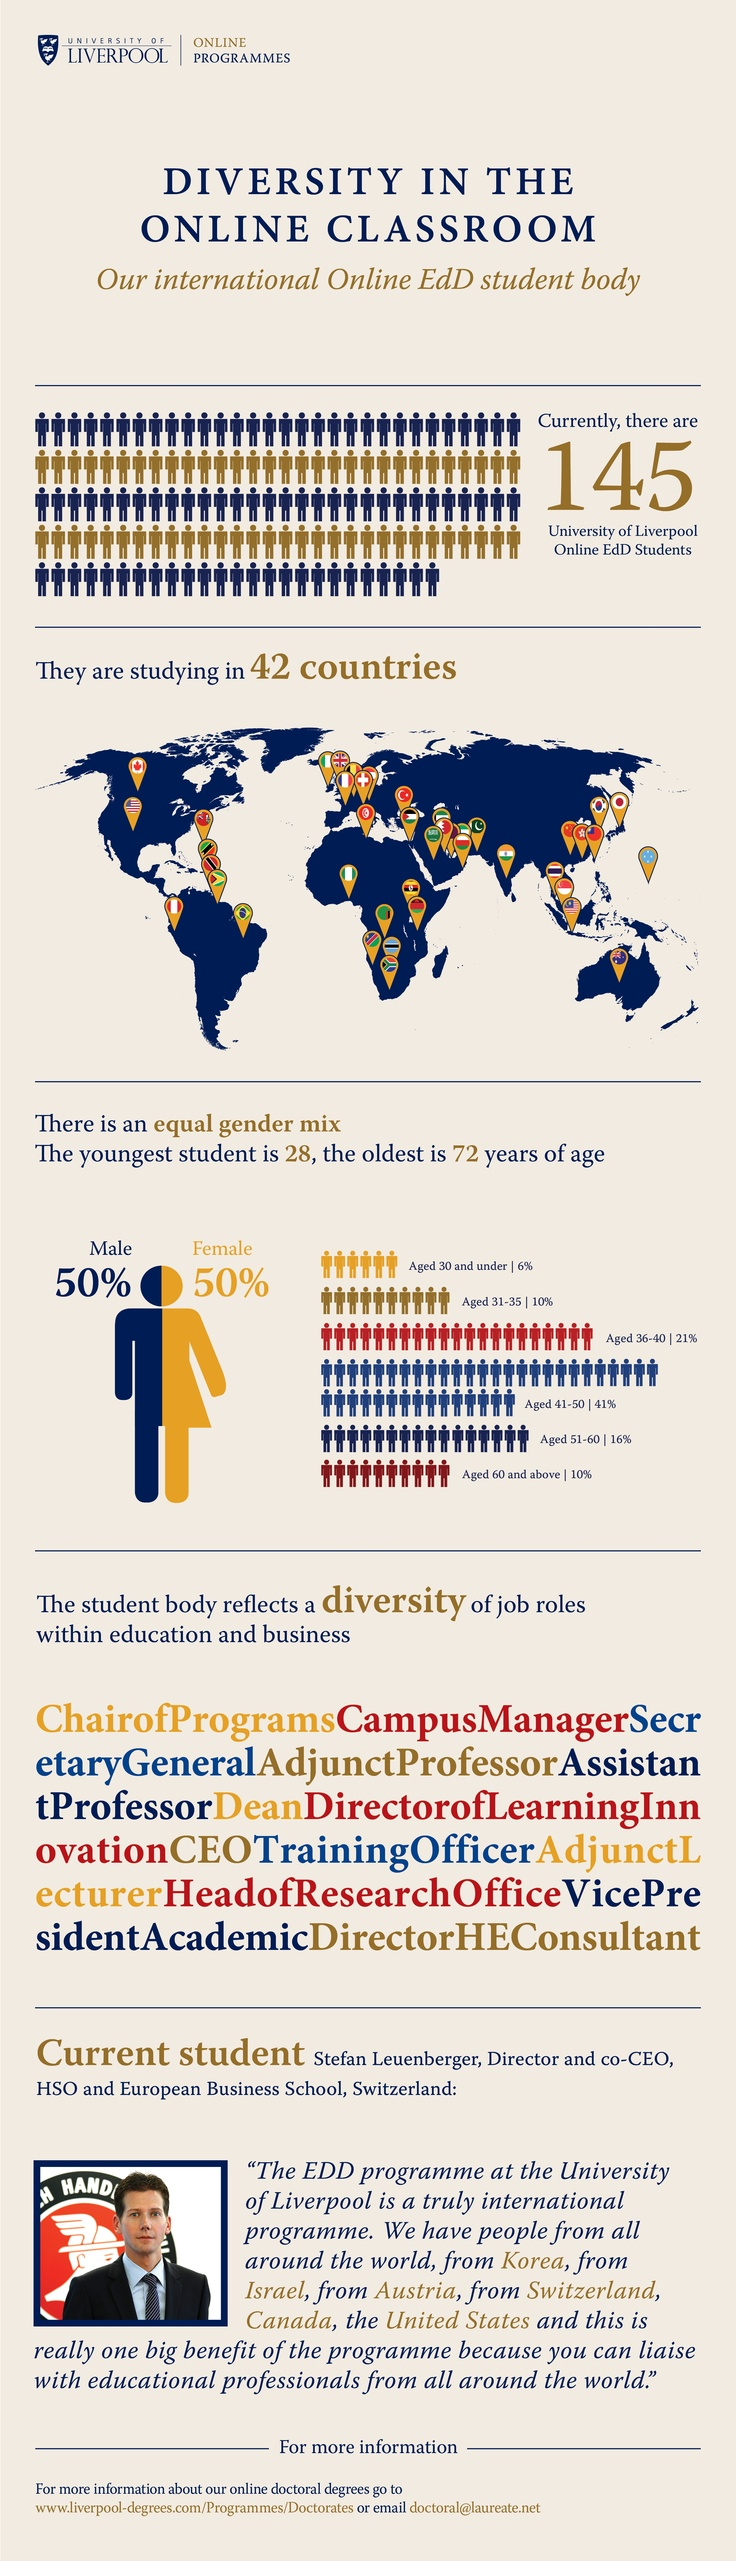 essay on diversity in the classroom